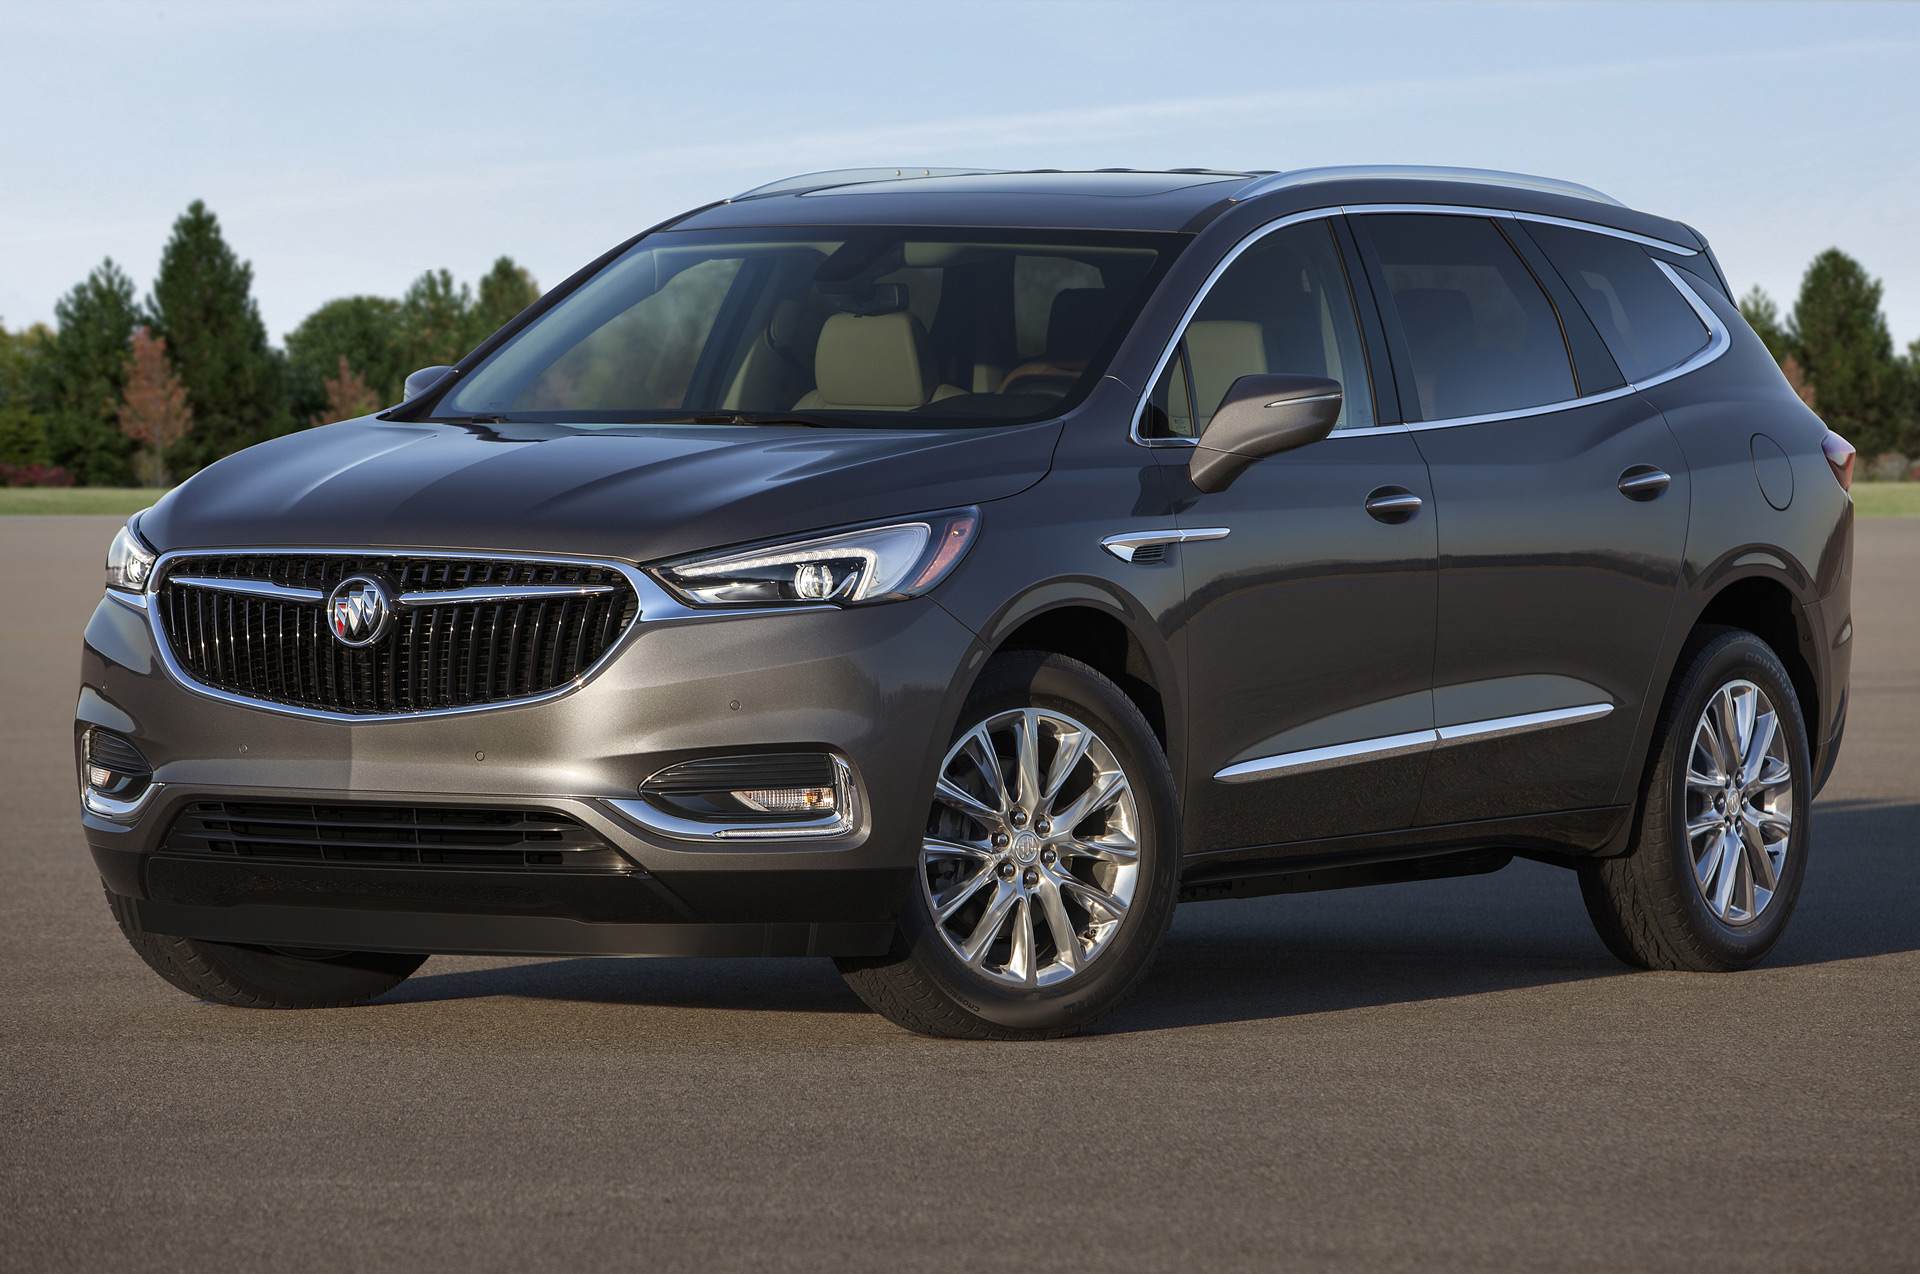 2018 Buick Enclave Review, Ratings, Specs, Prices, And